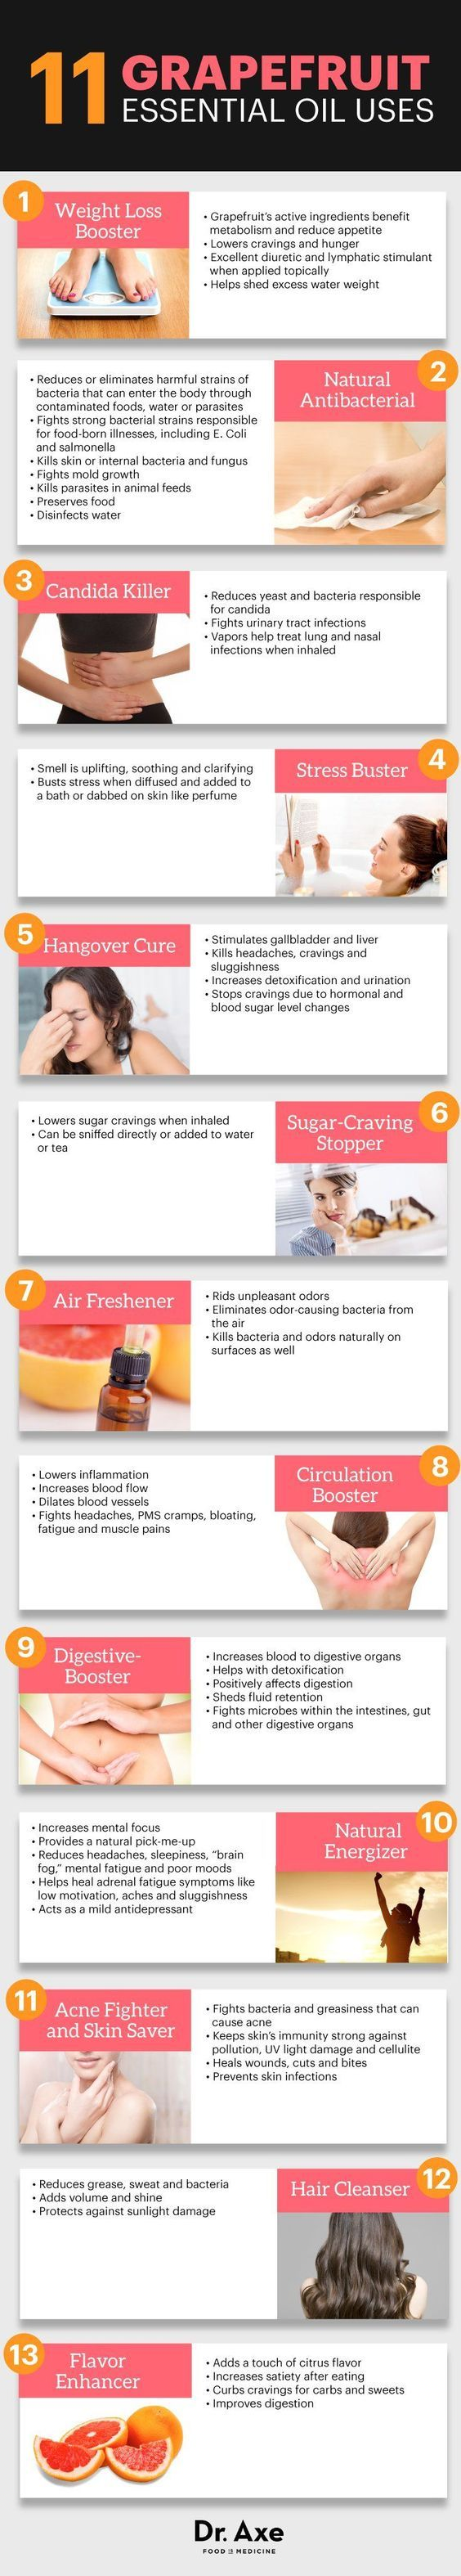 Essential Oils for Weight loss - What exactly is grapefruit essential oil good for?